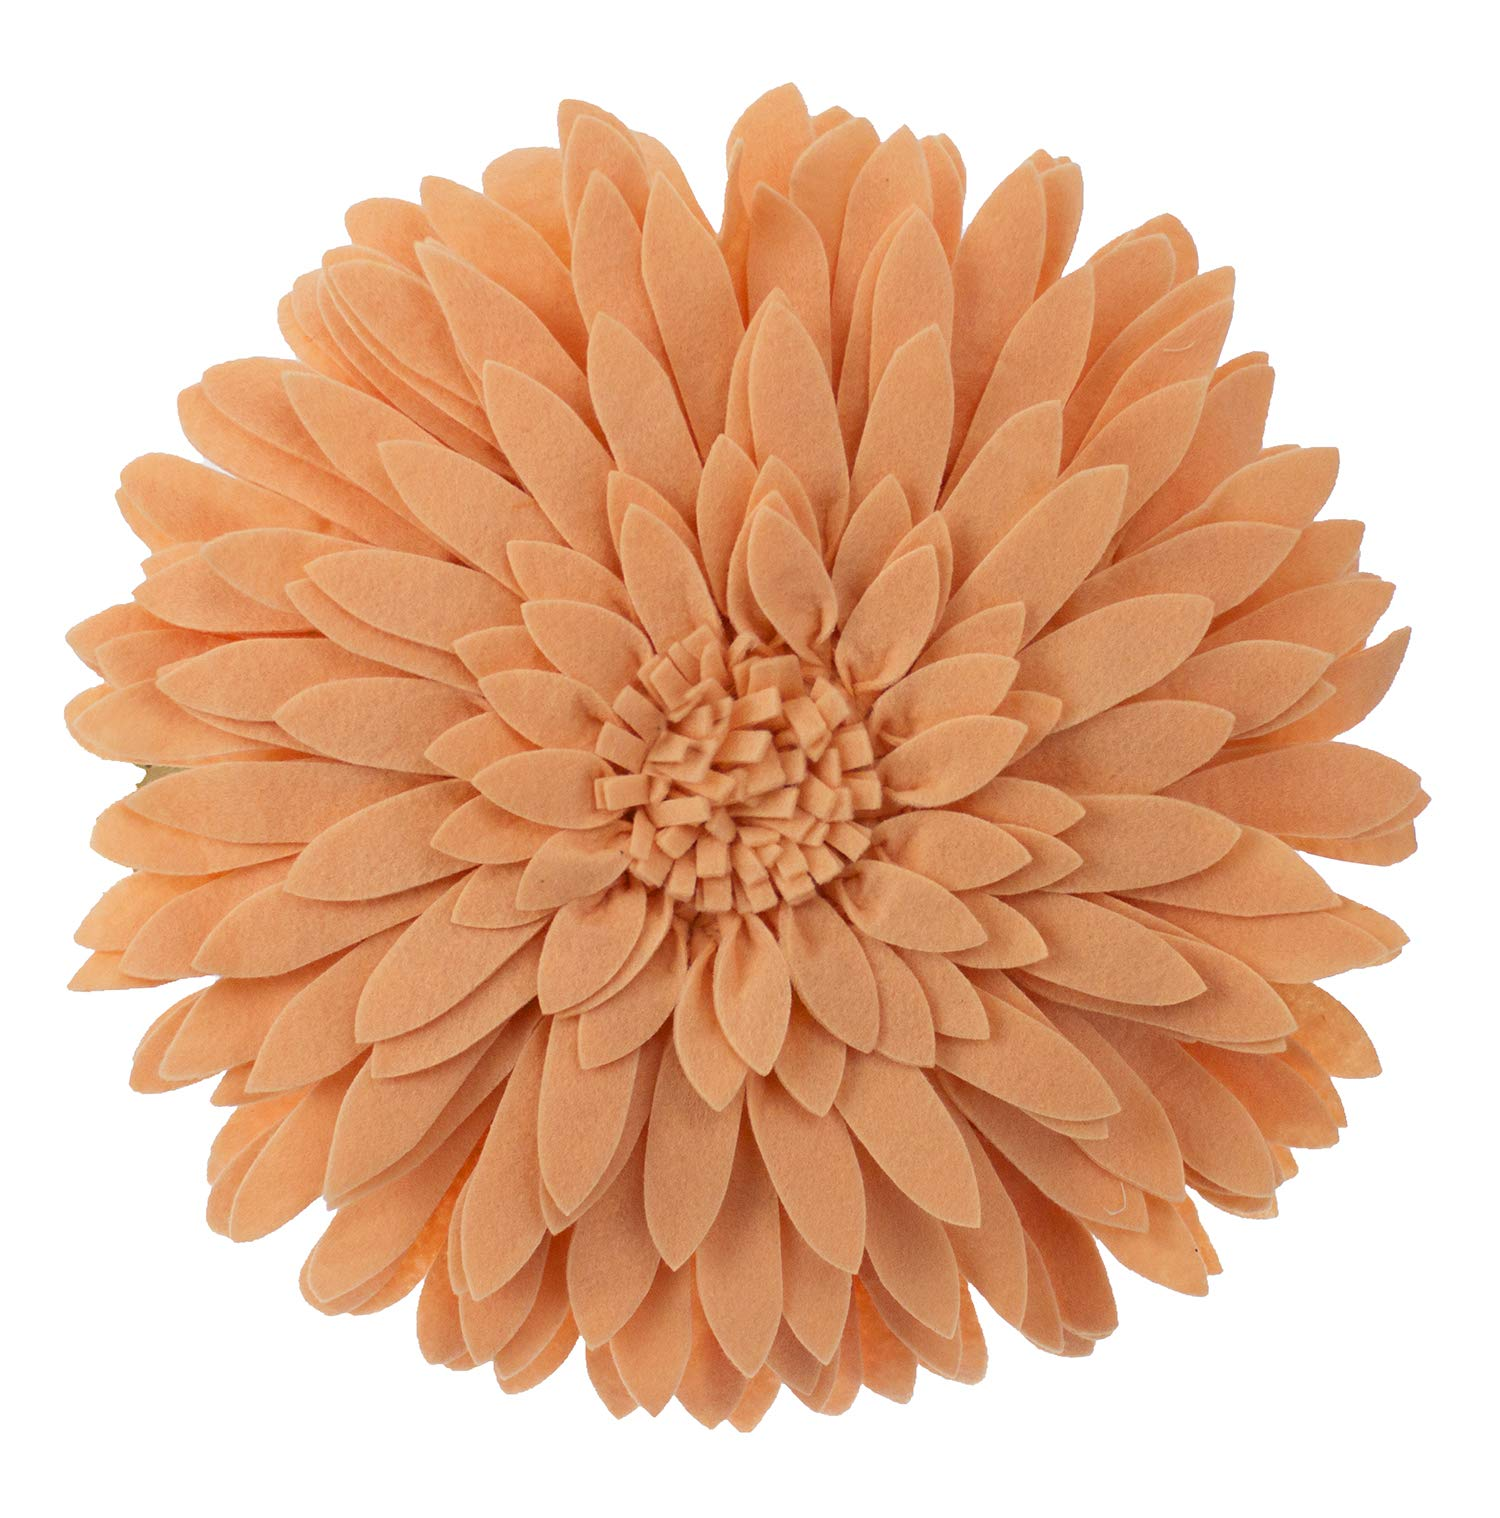 Fennco Styles 3D Sunflower Decorative Throw Pillow 13'' Round (Peach, Case+Insert)